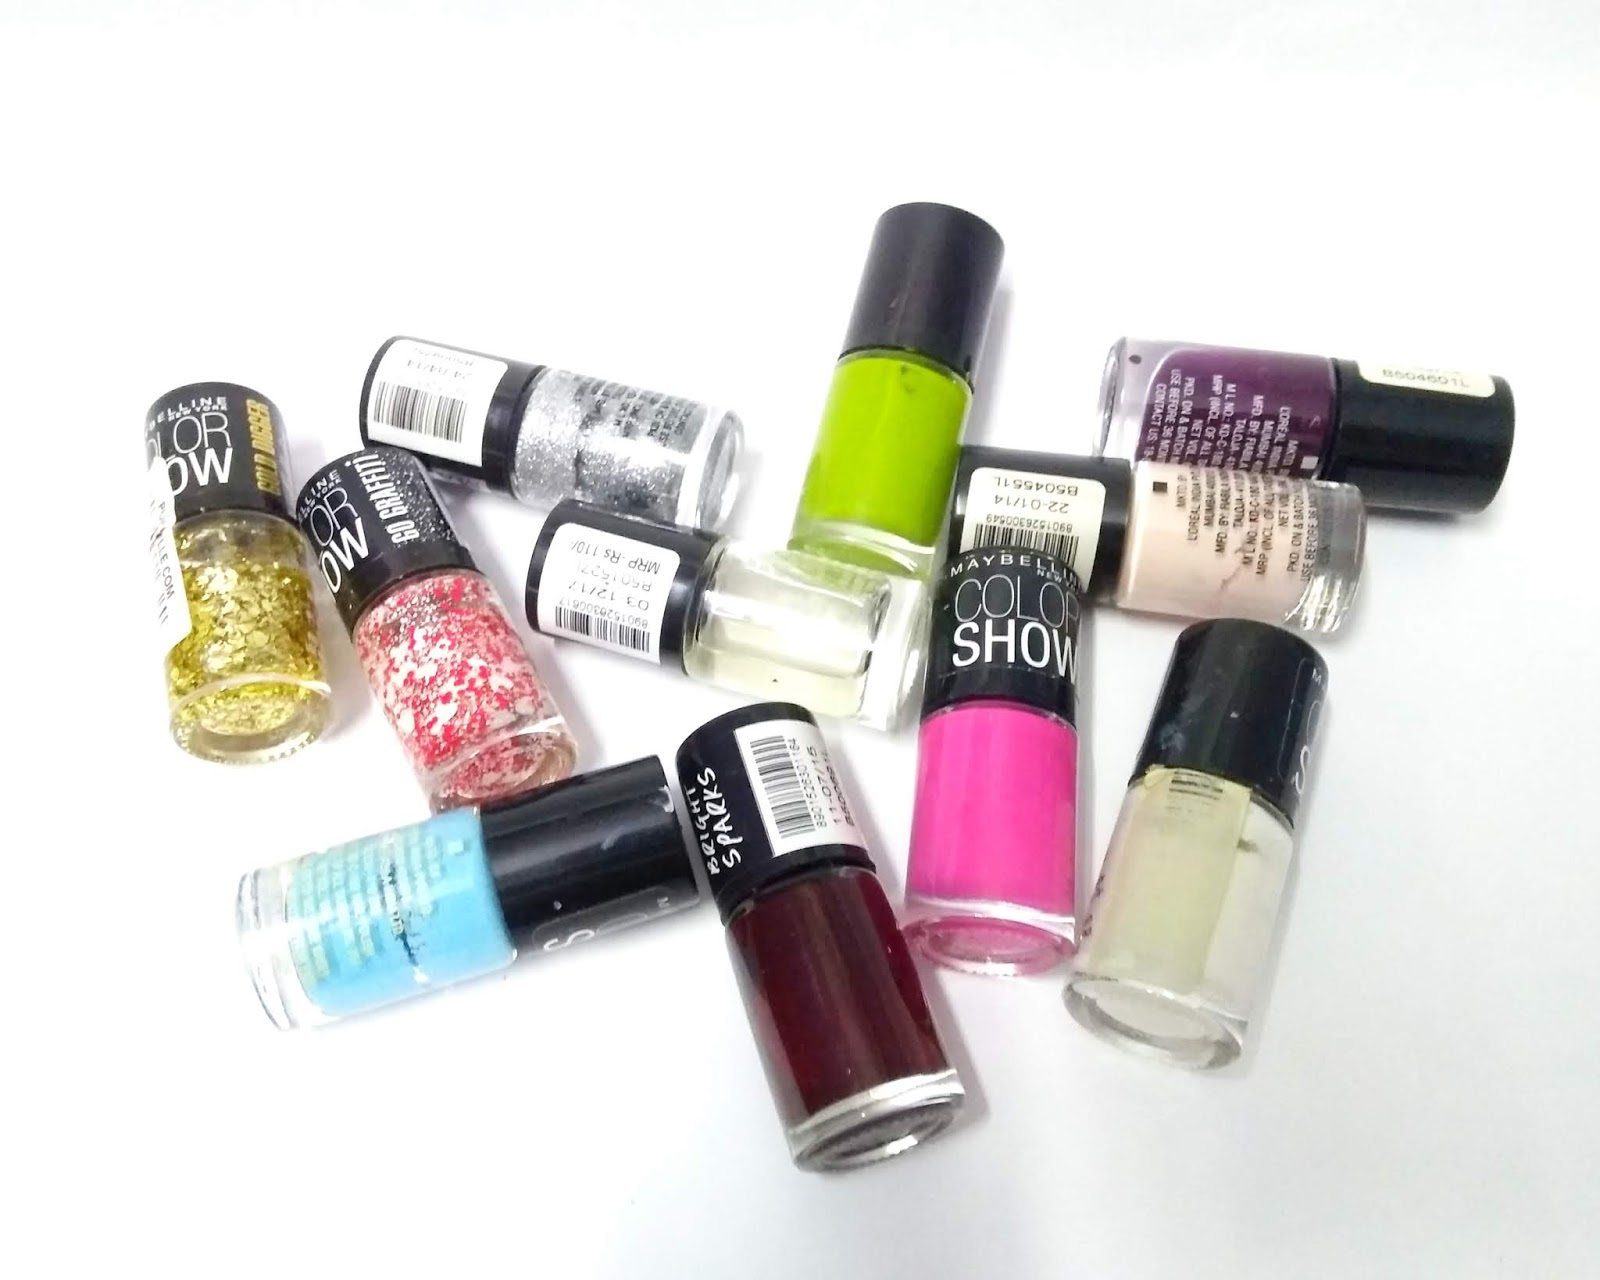 Maybelline Color Show Nail Polishes | Review